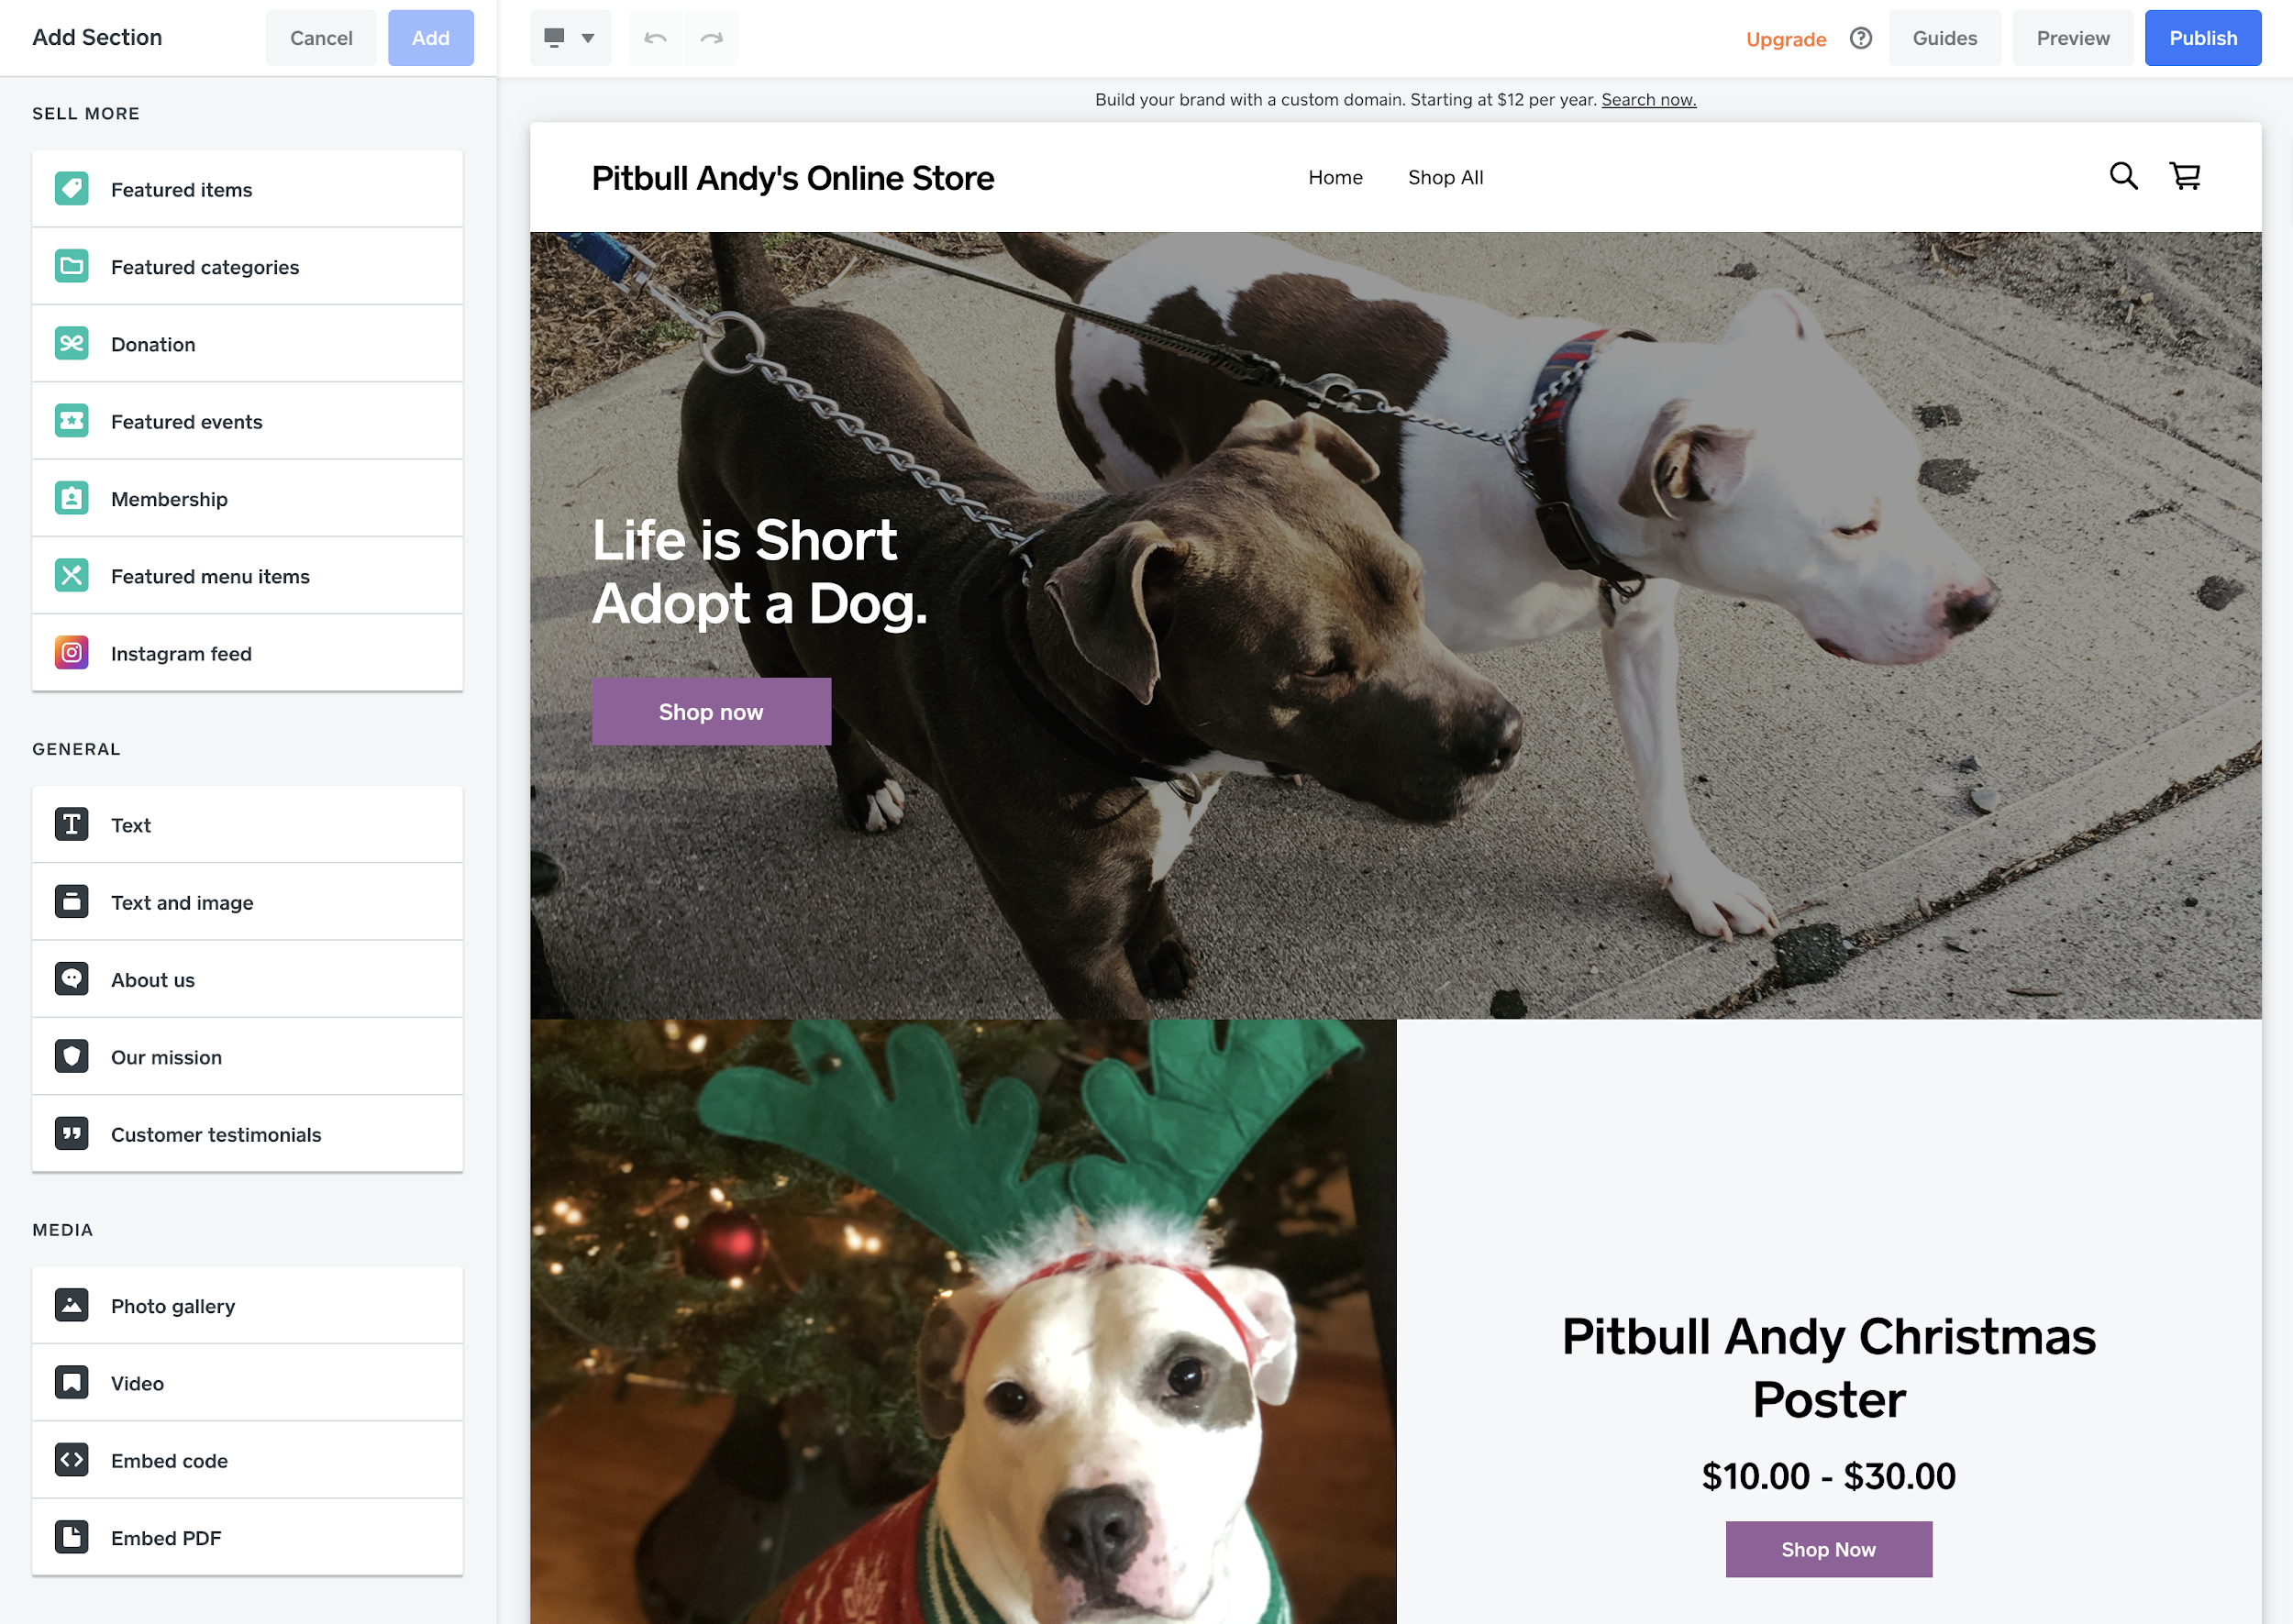 Square published online store with pitbulls